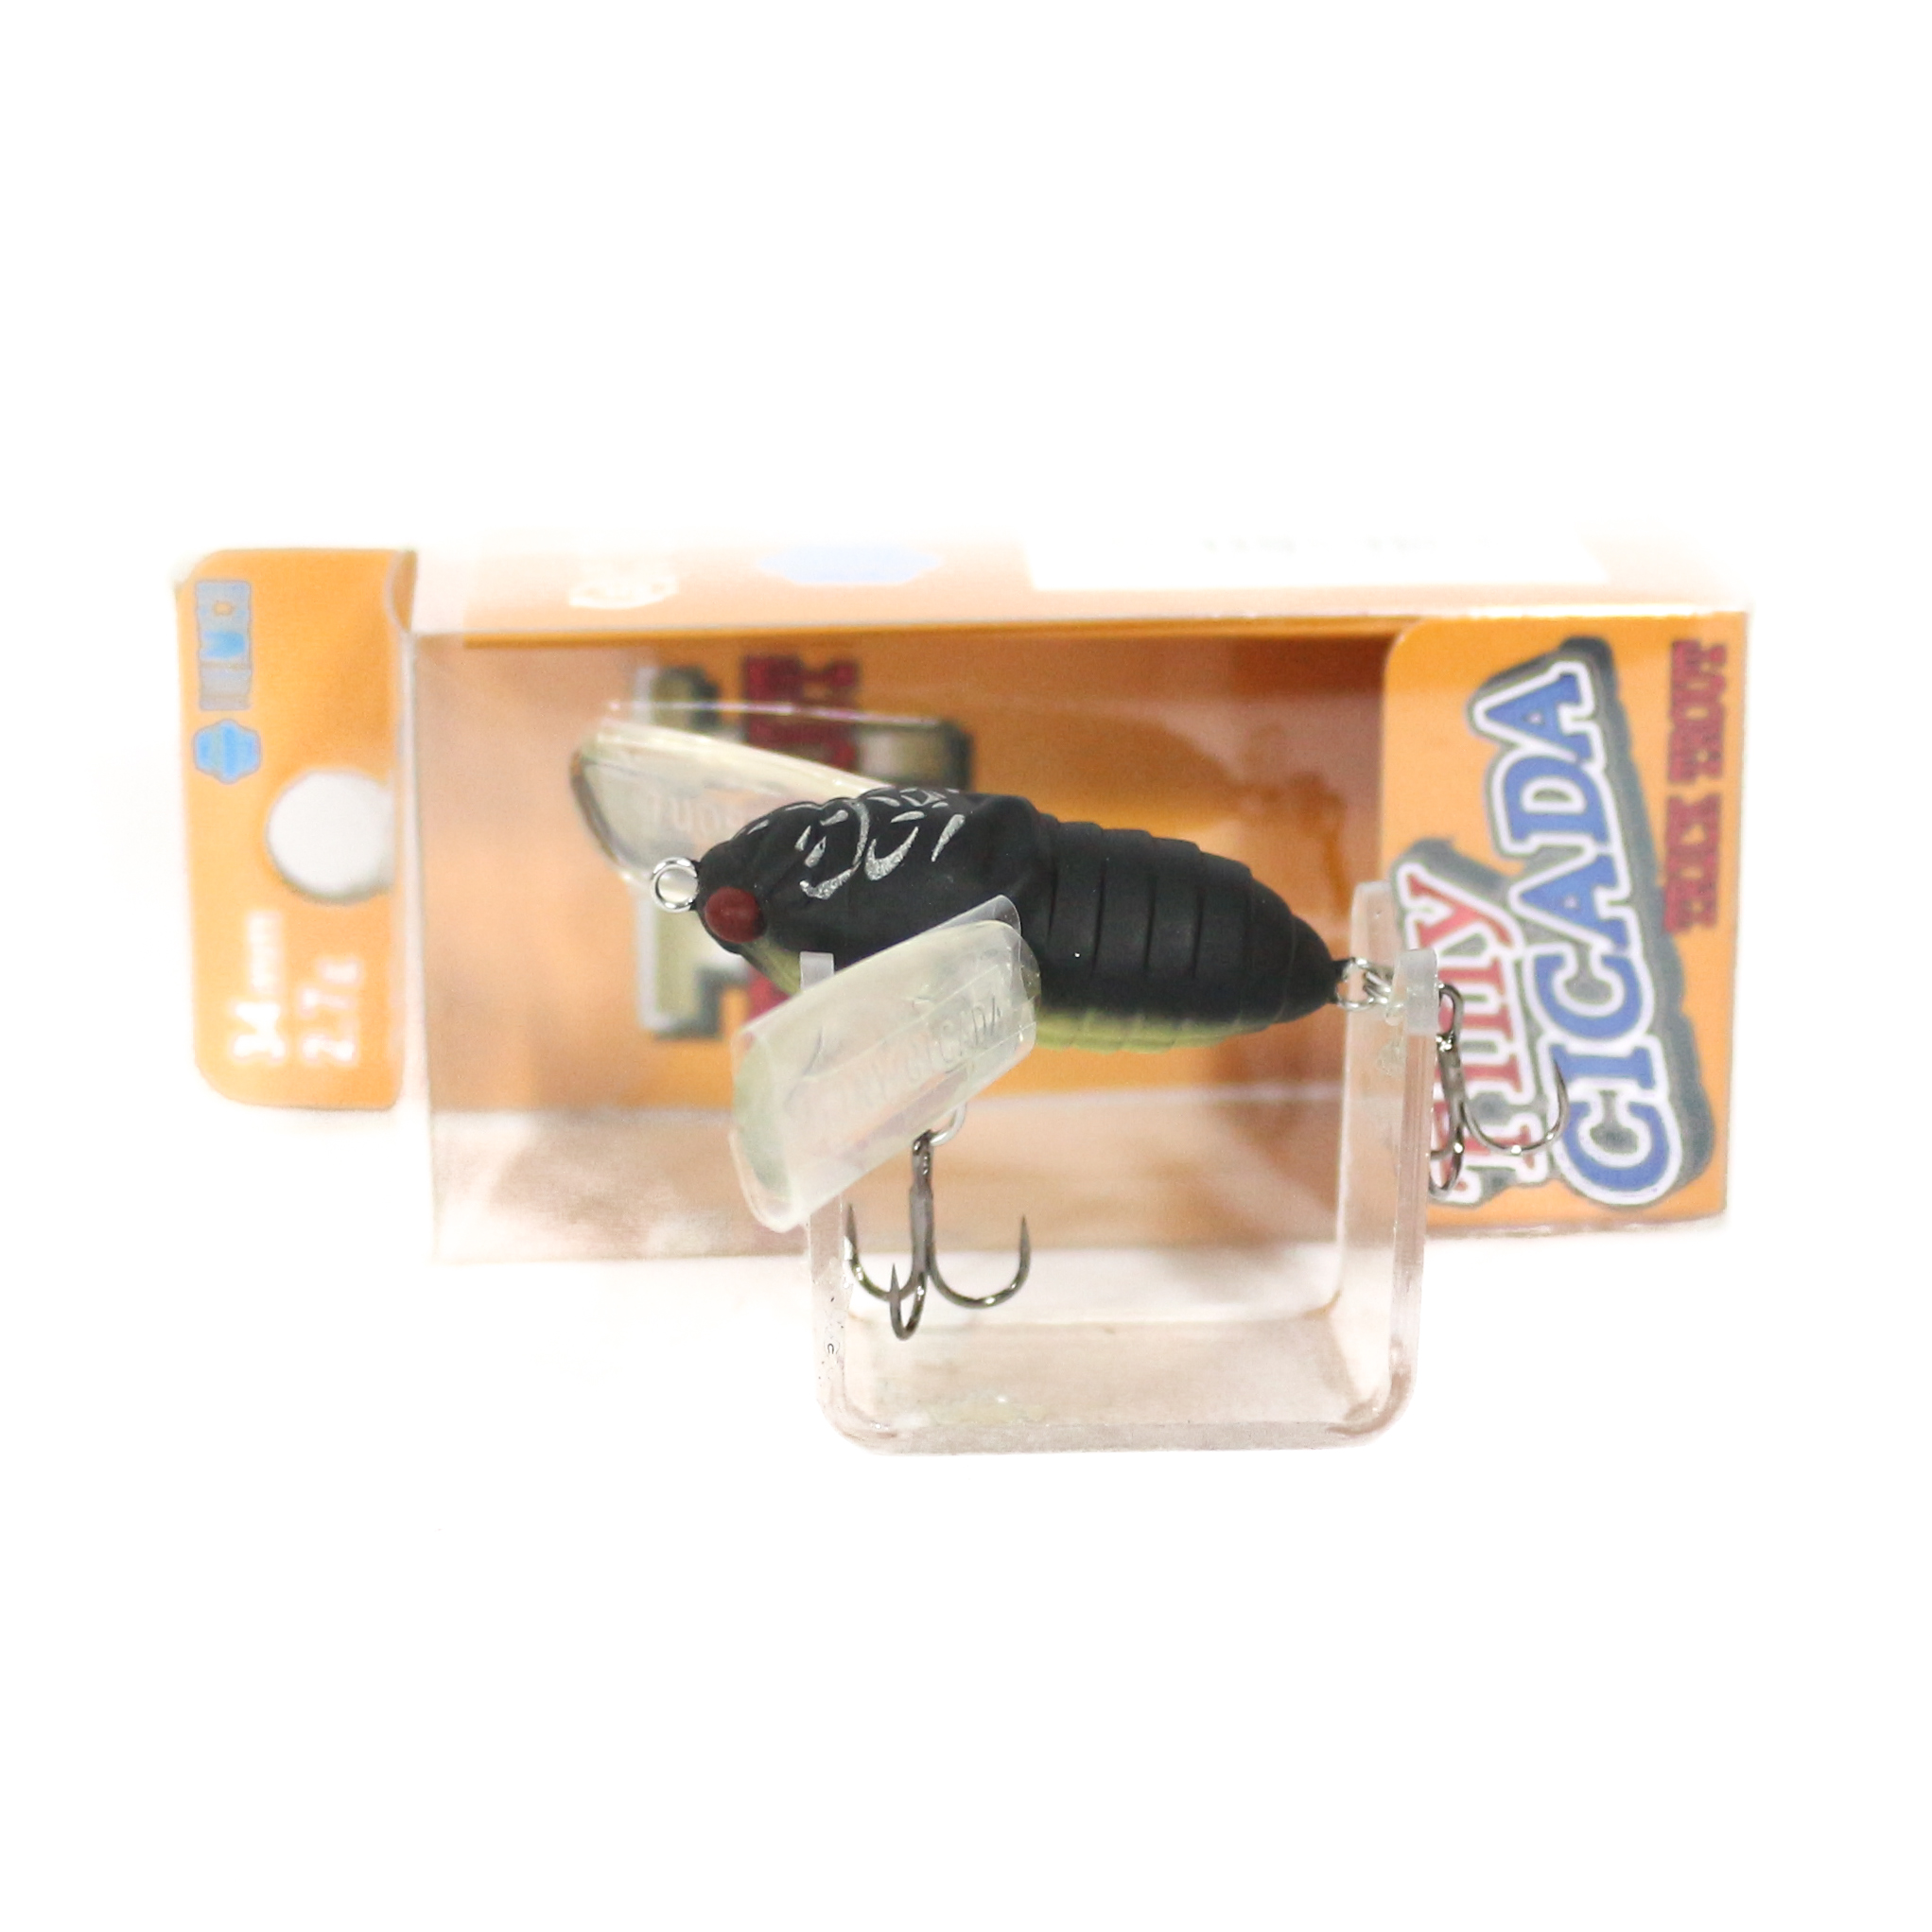 Tiemco Cicada Tiny Trick Trout Floating Lure TTTC-059 (0842)